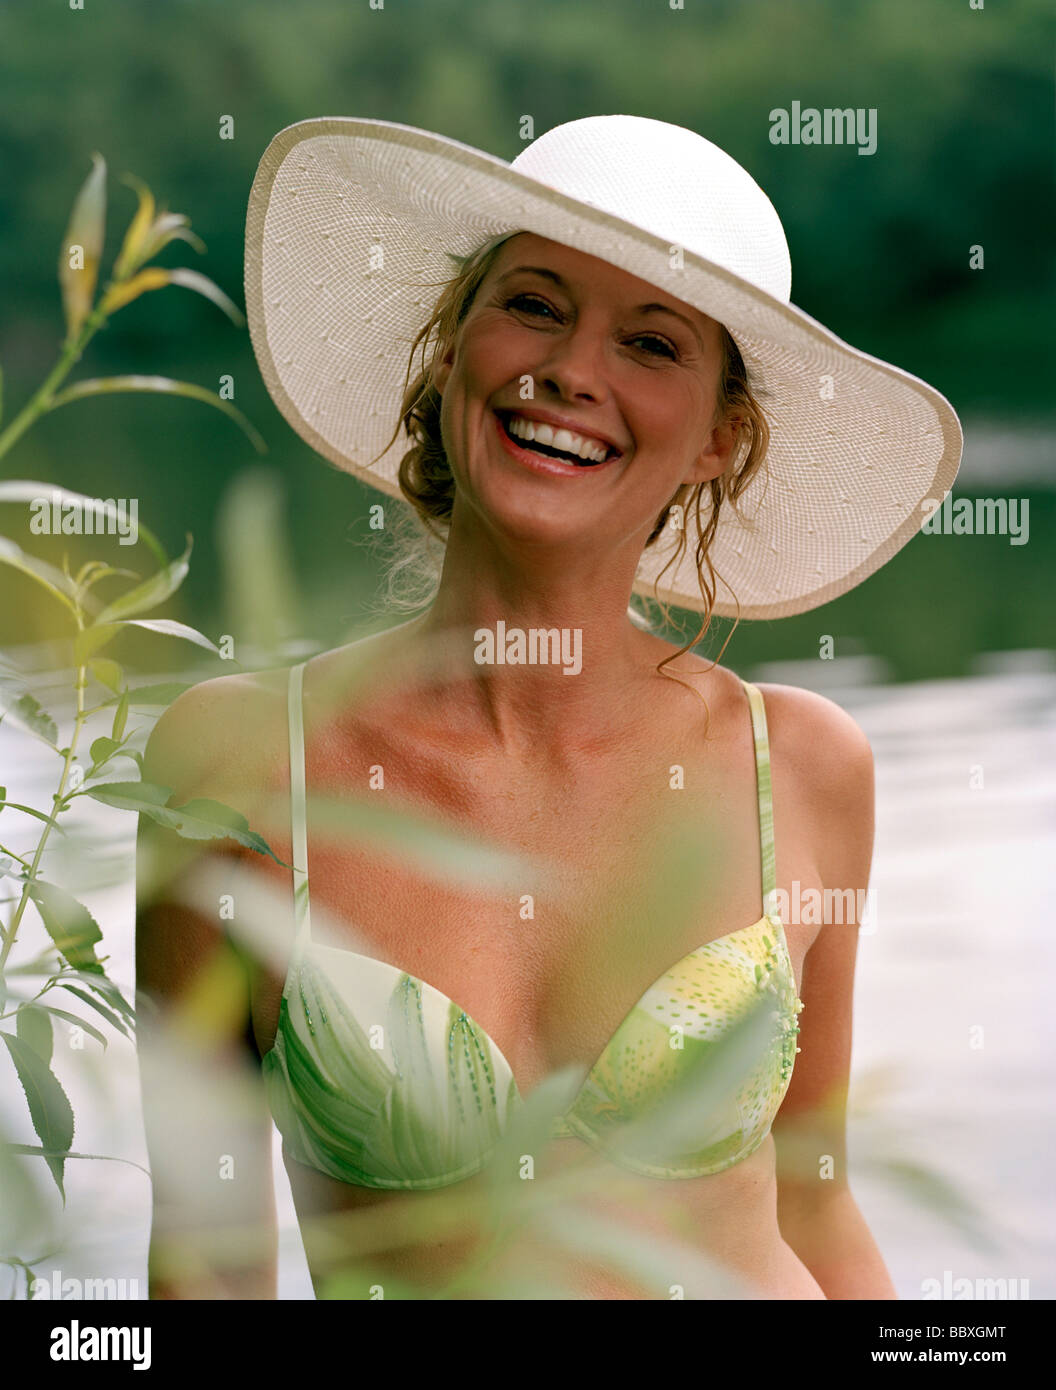 A smiling woman wearing bikini and a hat Sweden. - Stock Image